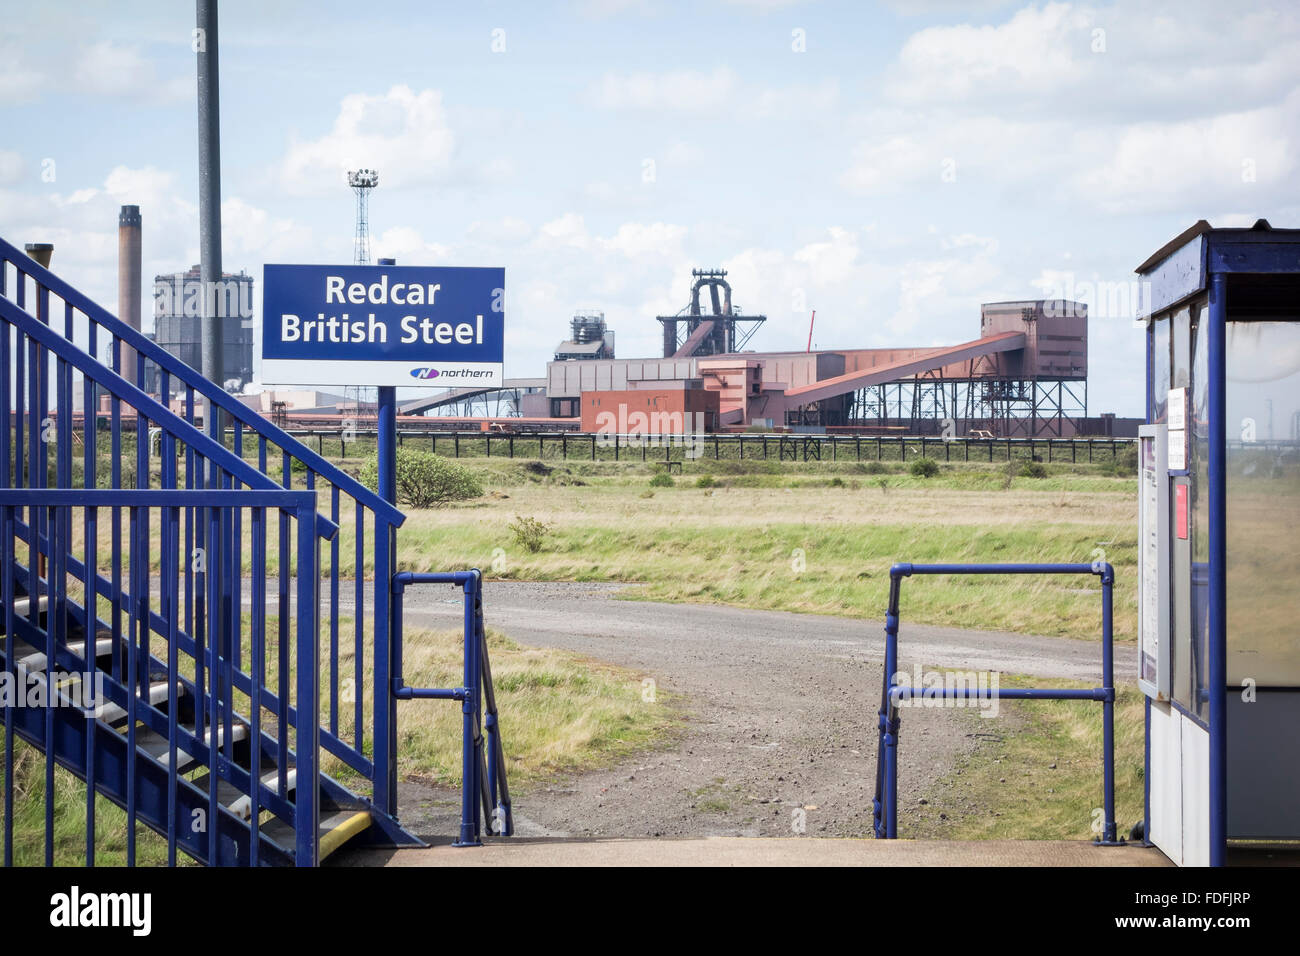 Train station at Redcar British Steel with blast furnace in background. Redcar, England, UK. The least used station - Stock Image